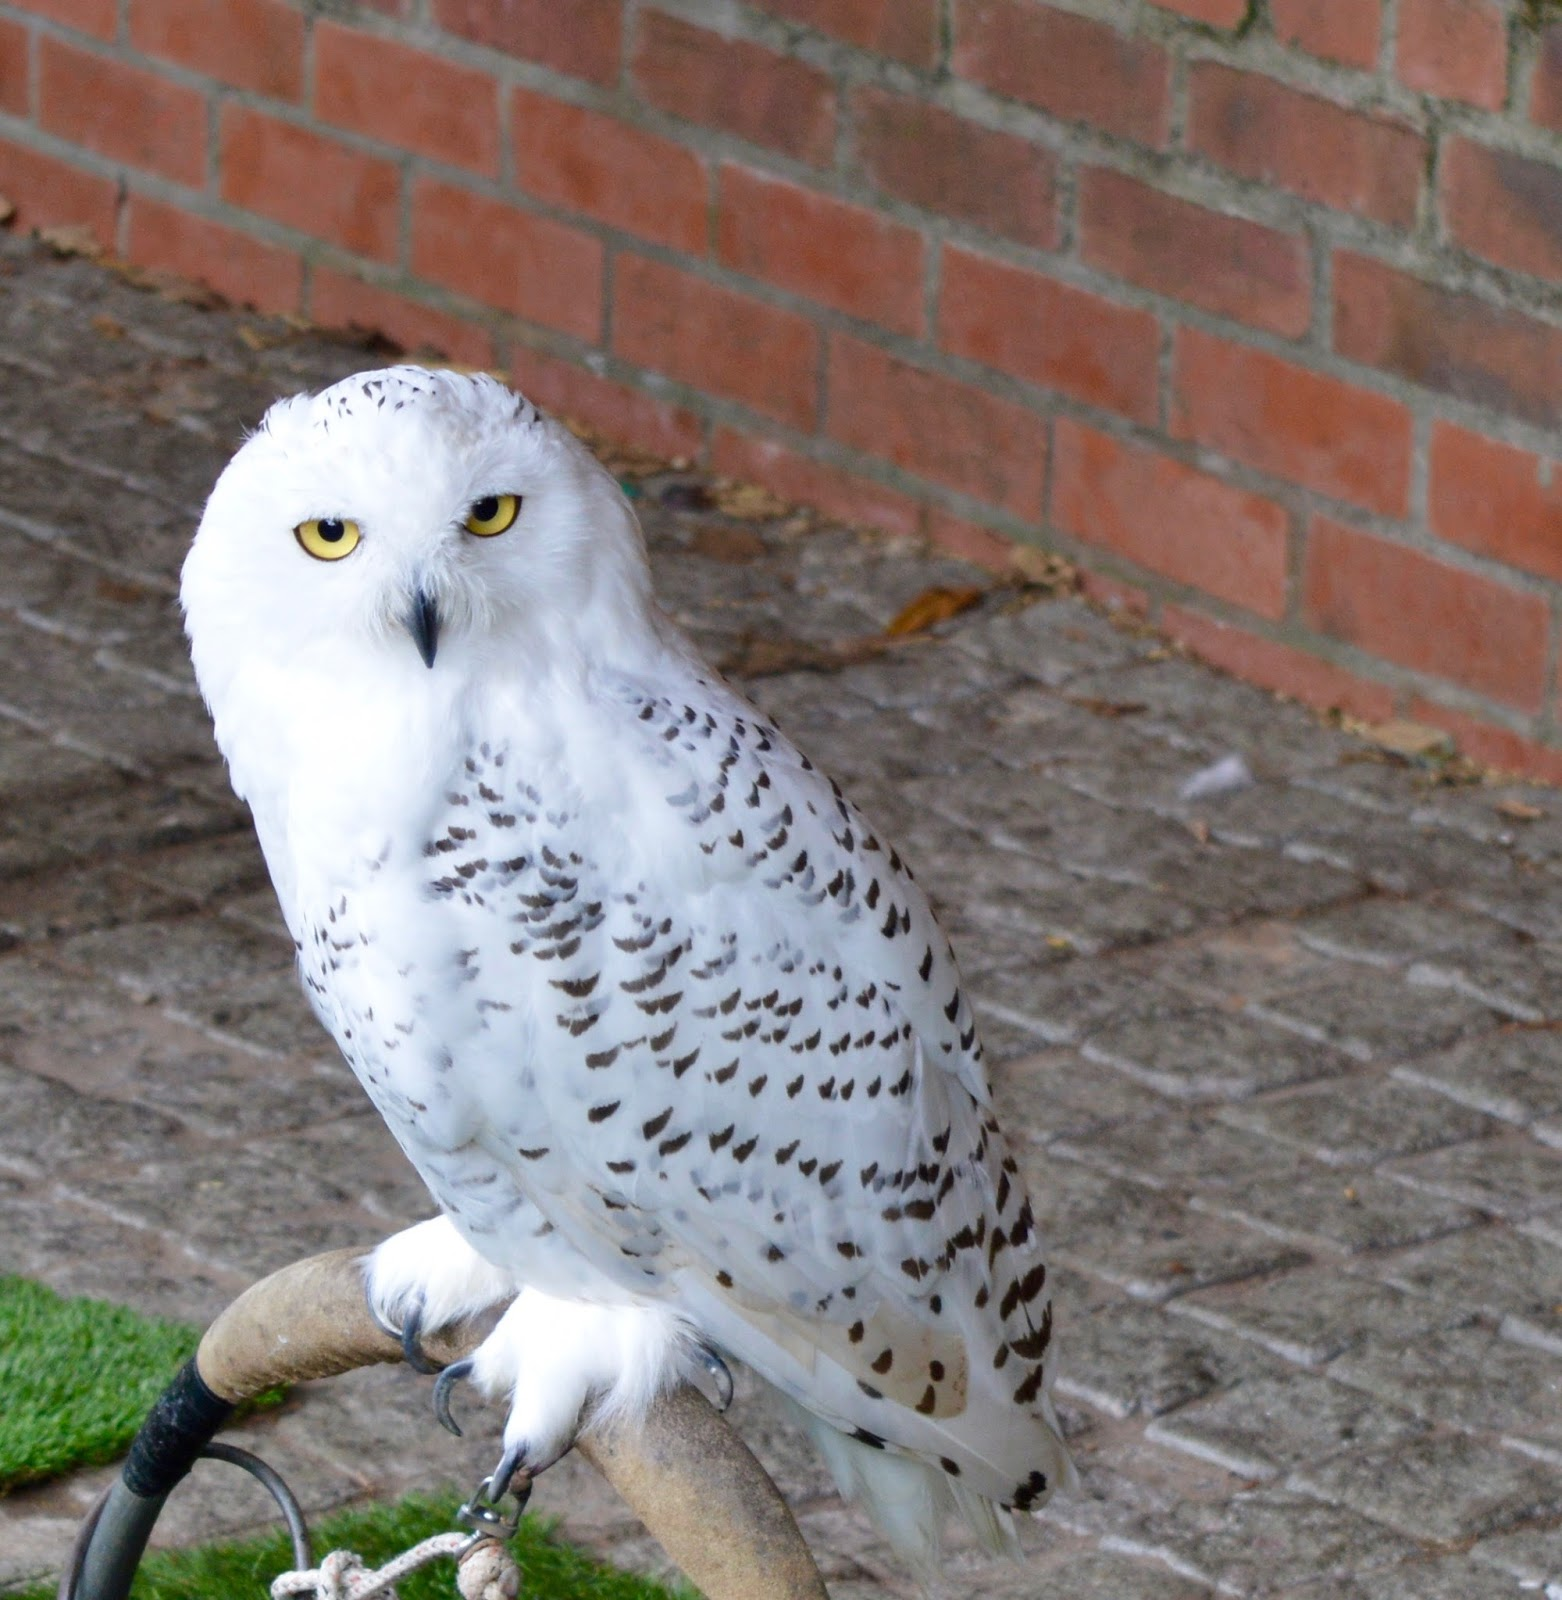 Half Term Hocus Pocus at Preston Park | The North East's very own Diagon Alley - Hedwig owl